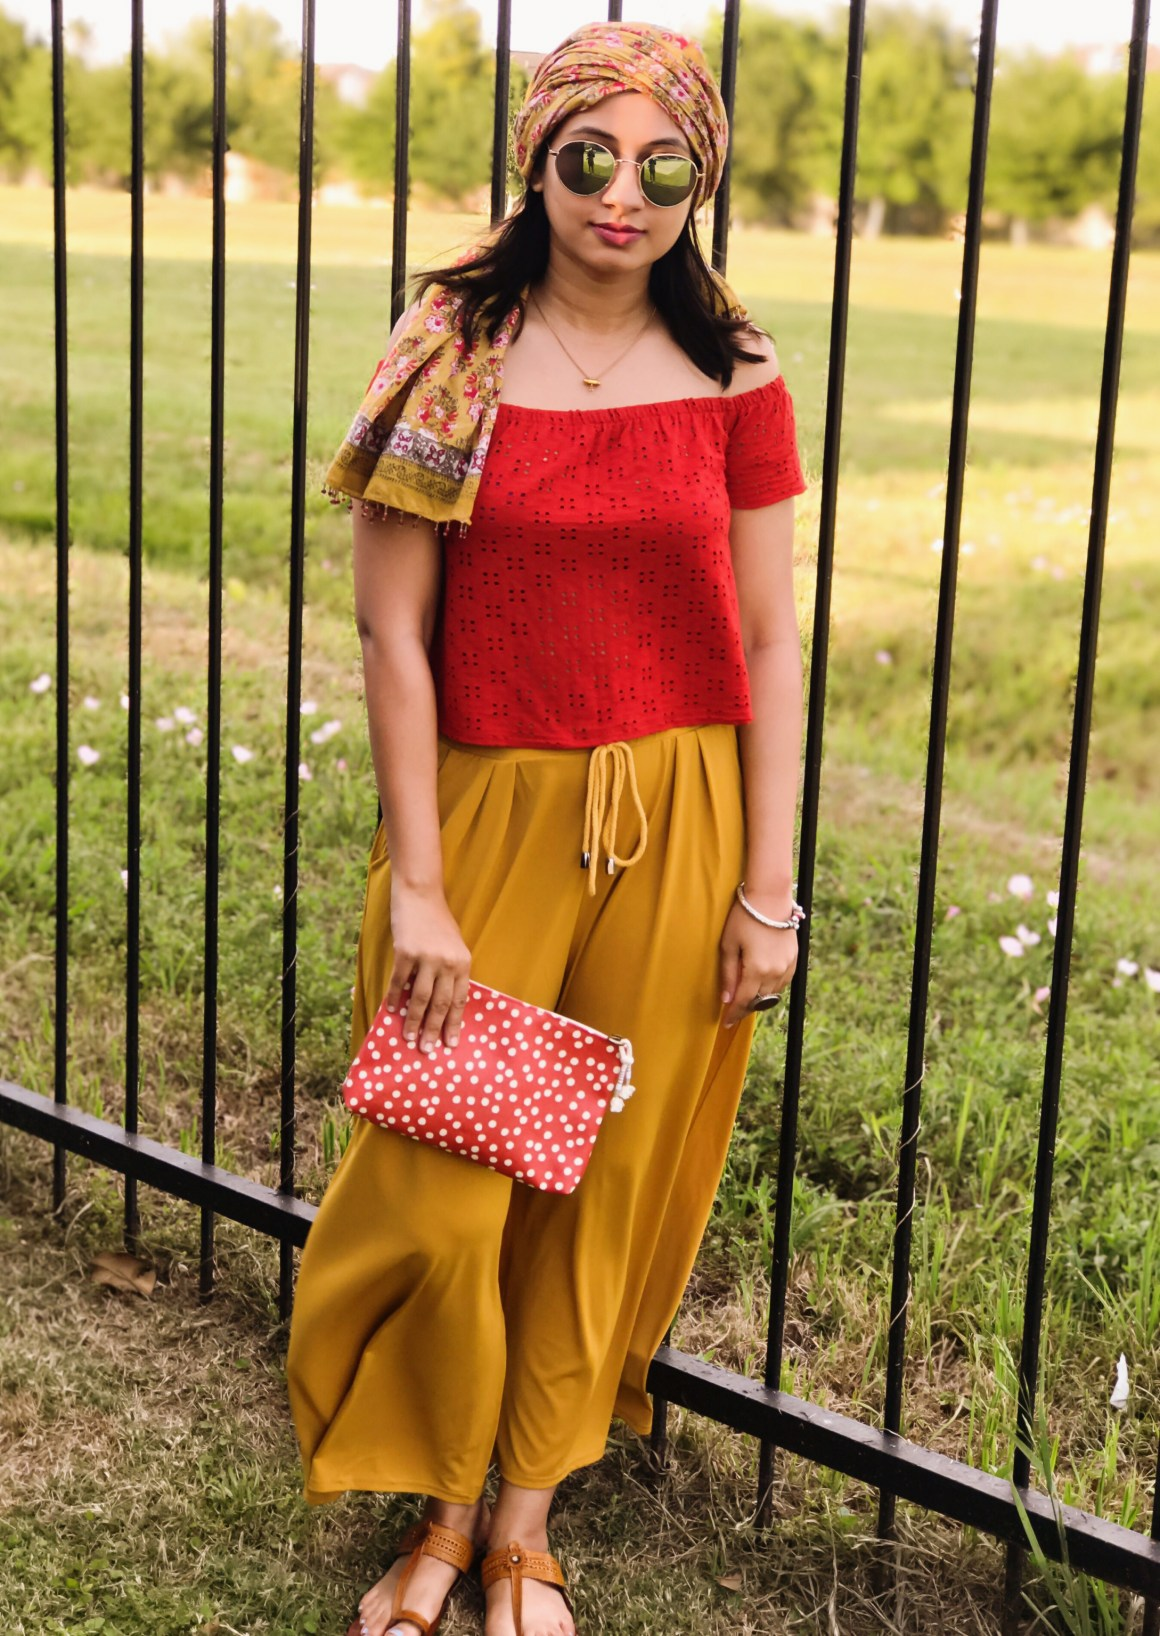 Headscarf - Anokhi, Red off-shoulder top - Zara, Madewell pouch, Yellow pants - Zaful